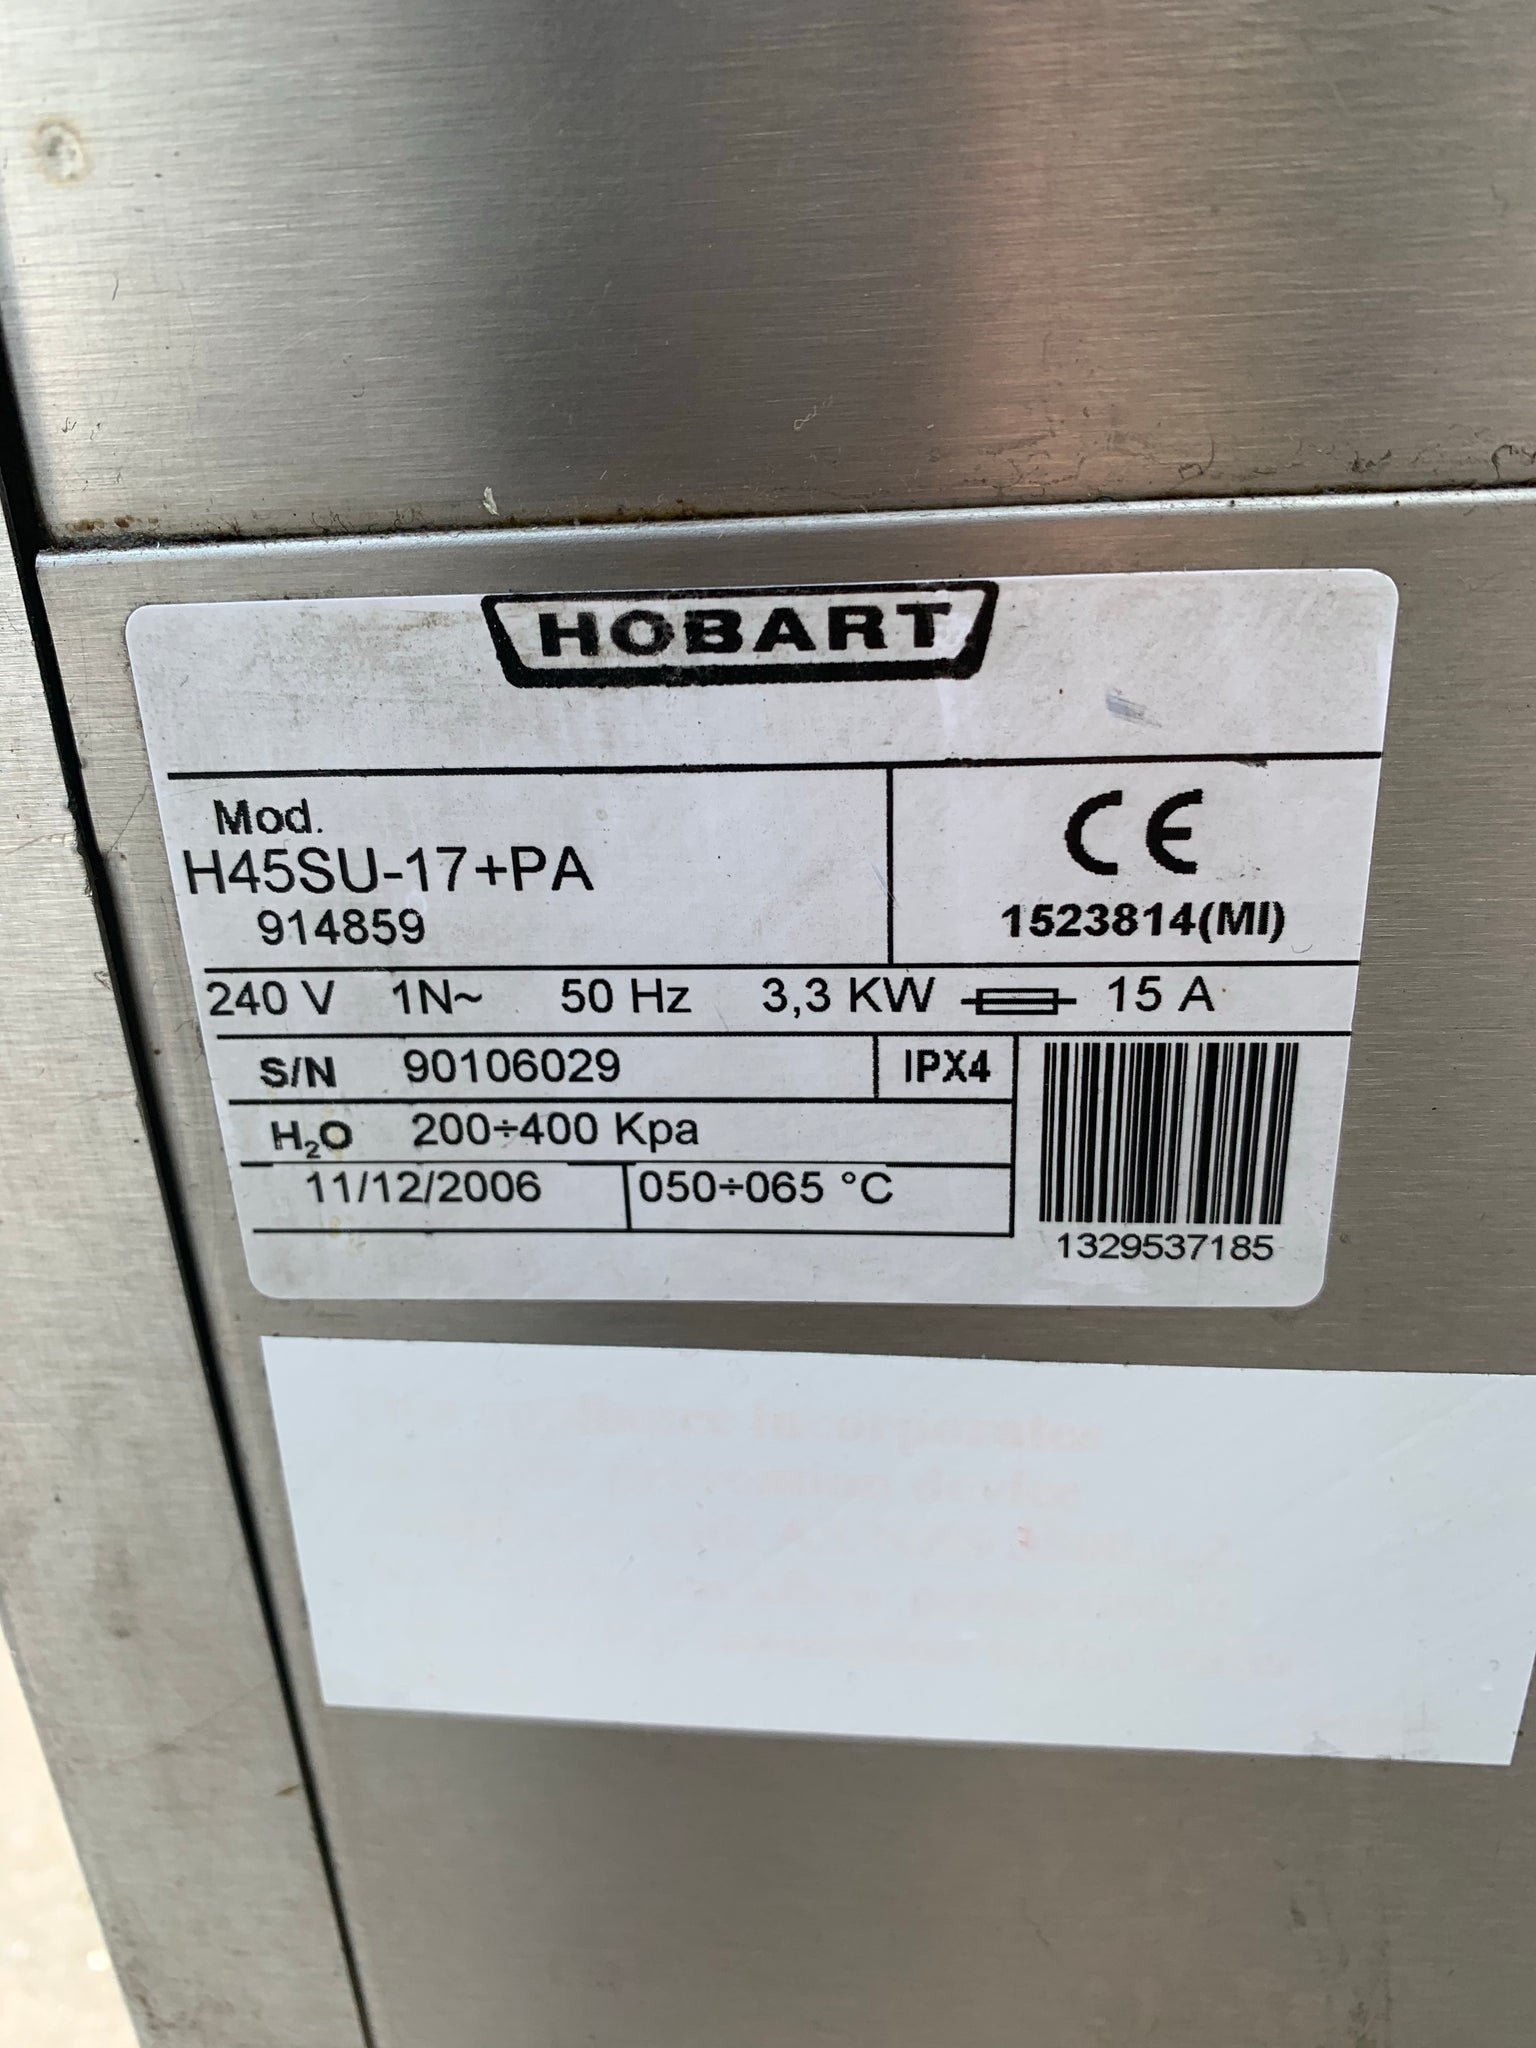 APS334 HOBART H45SU SINGLE PHASE PASSTHROUGH COMMERCIAL DISHWASHER WITH WARRANTY - Washpro